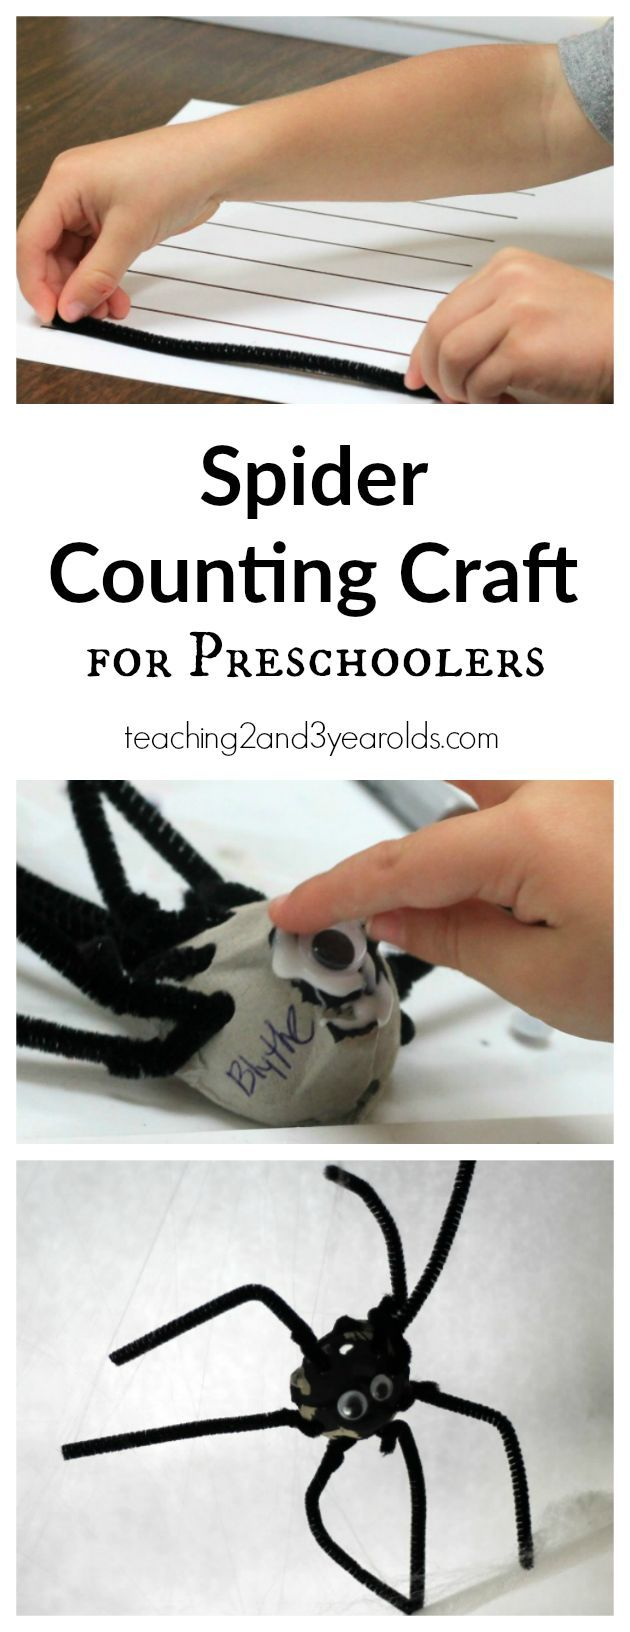 Craft kits for 3 year olds - Spider Counting Craft